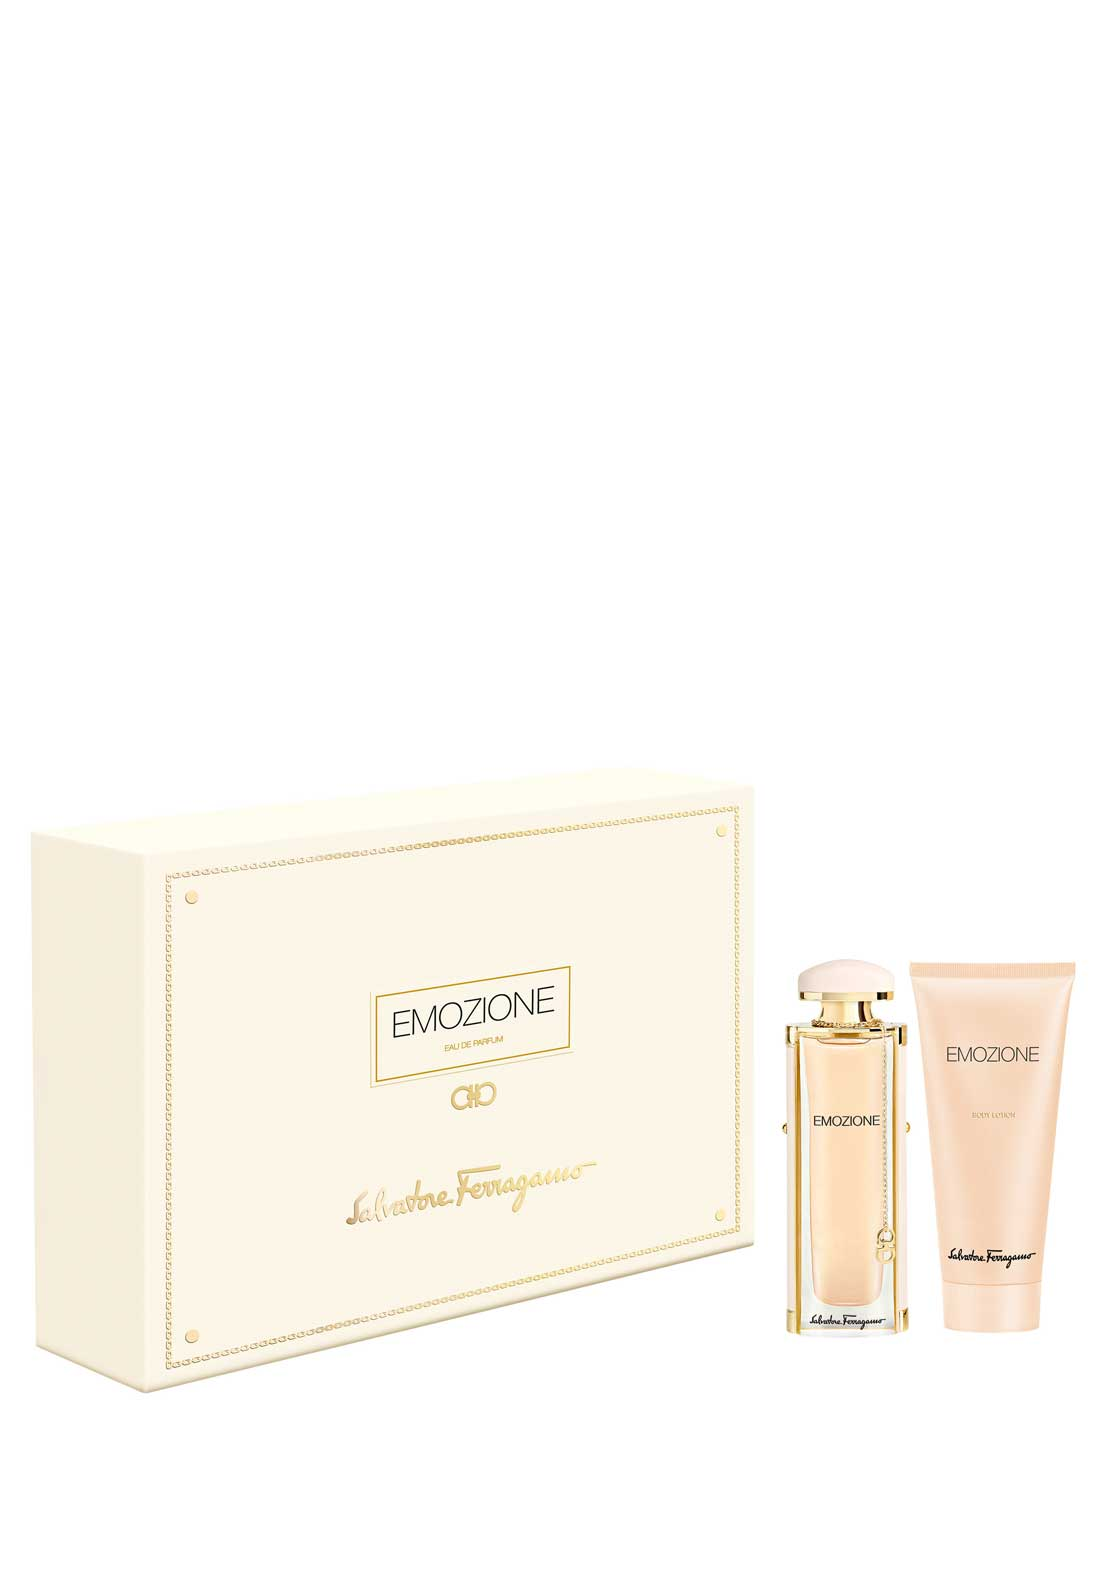 Salvatore Ferragamo Emozione Gift Set for her, 30ml